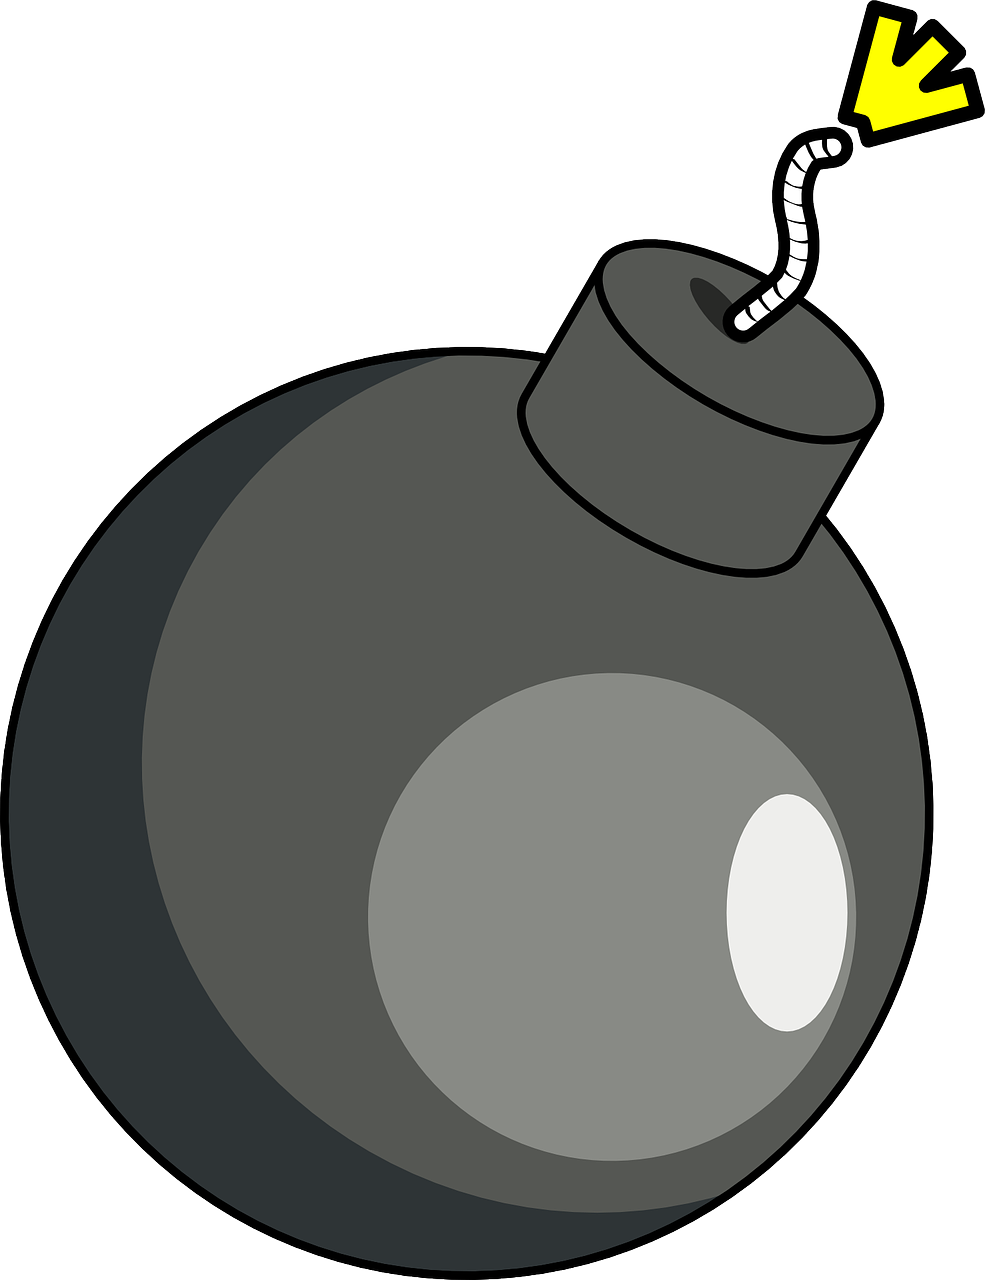 Bomb clipart #15, Download drawings